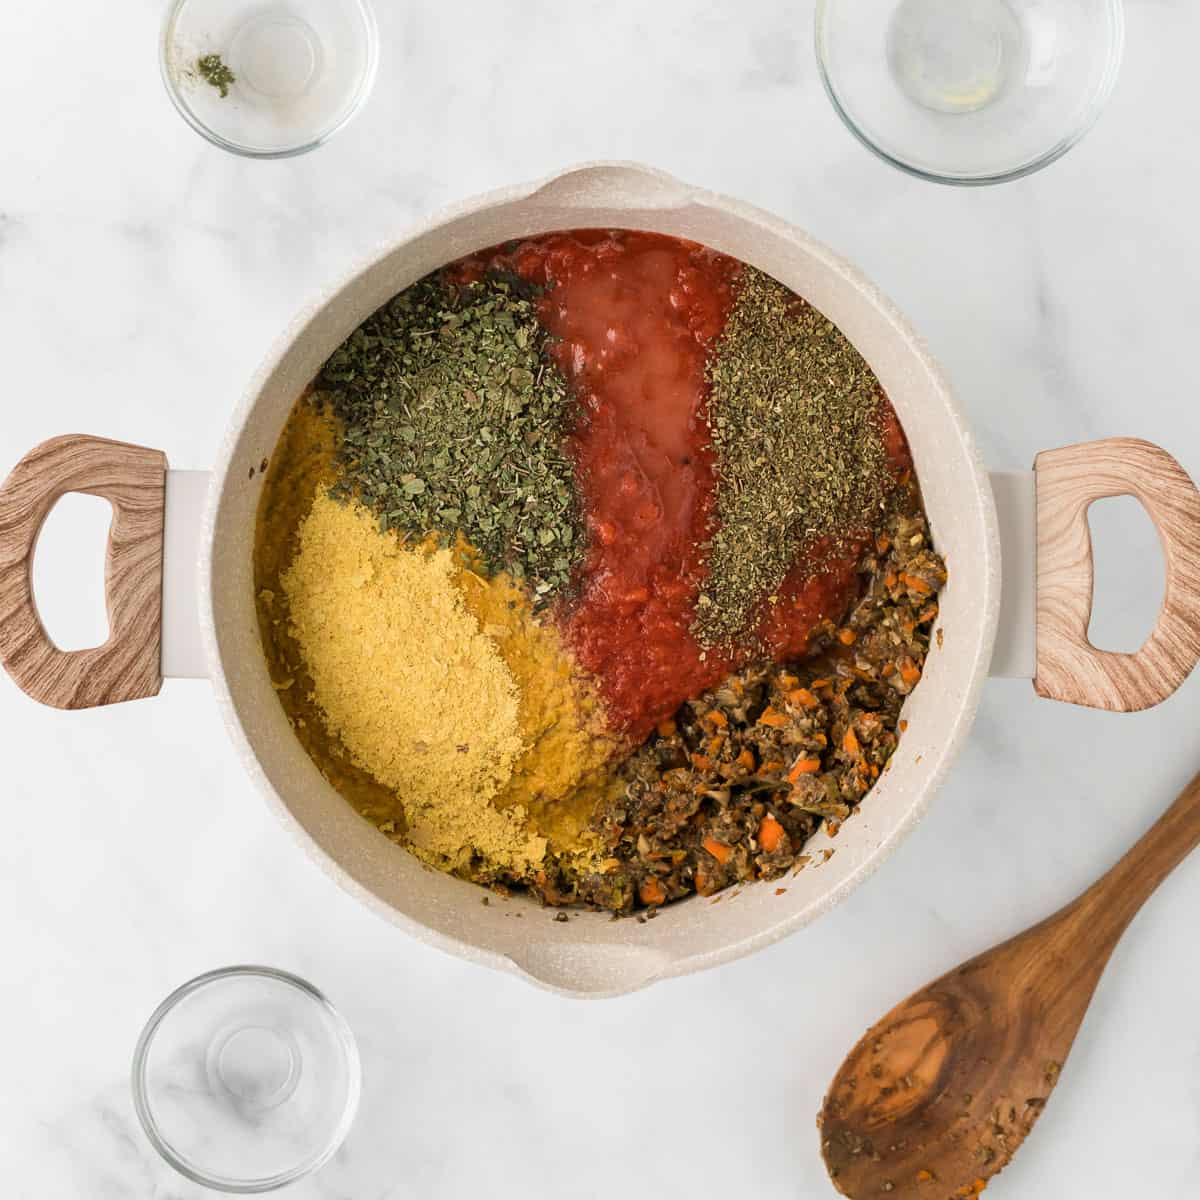 adding the nutritional yeast, tomatoes, and spices to the vegetarian bolognese